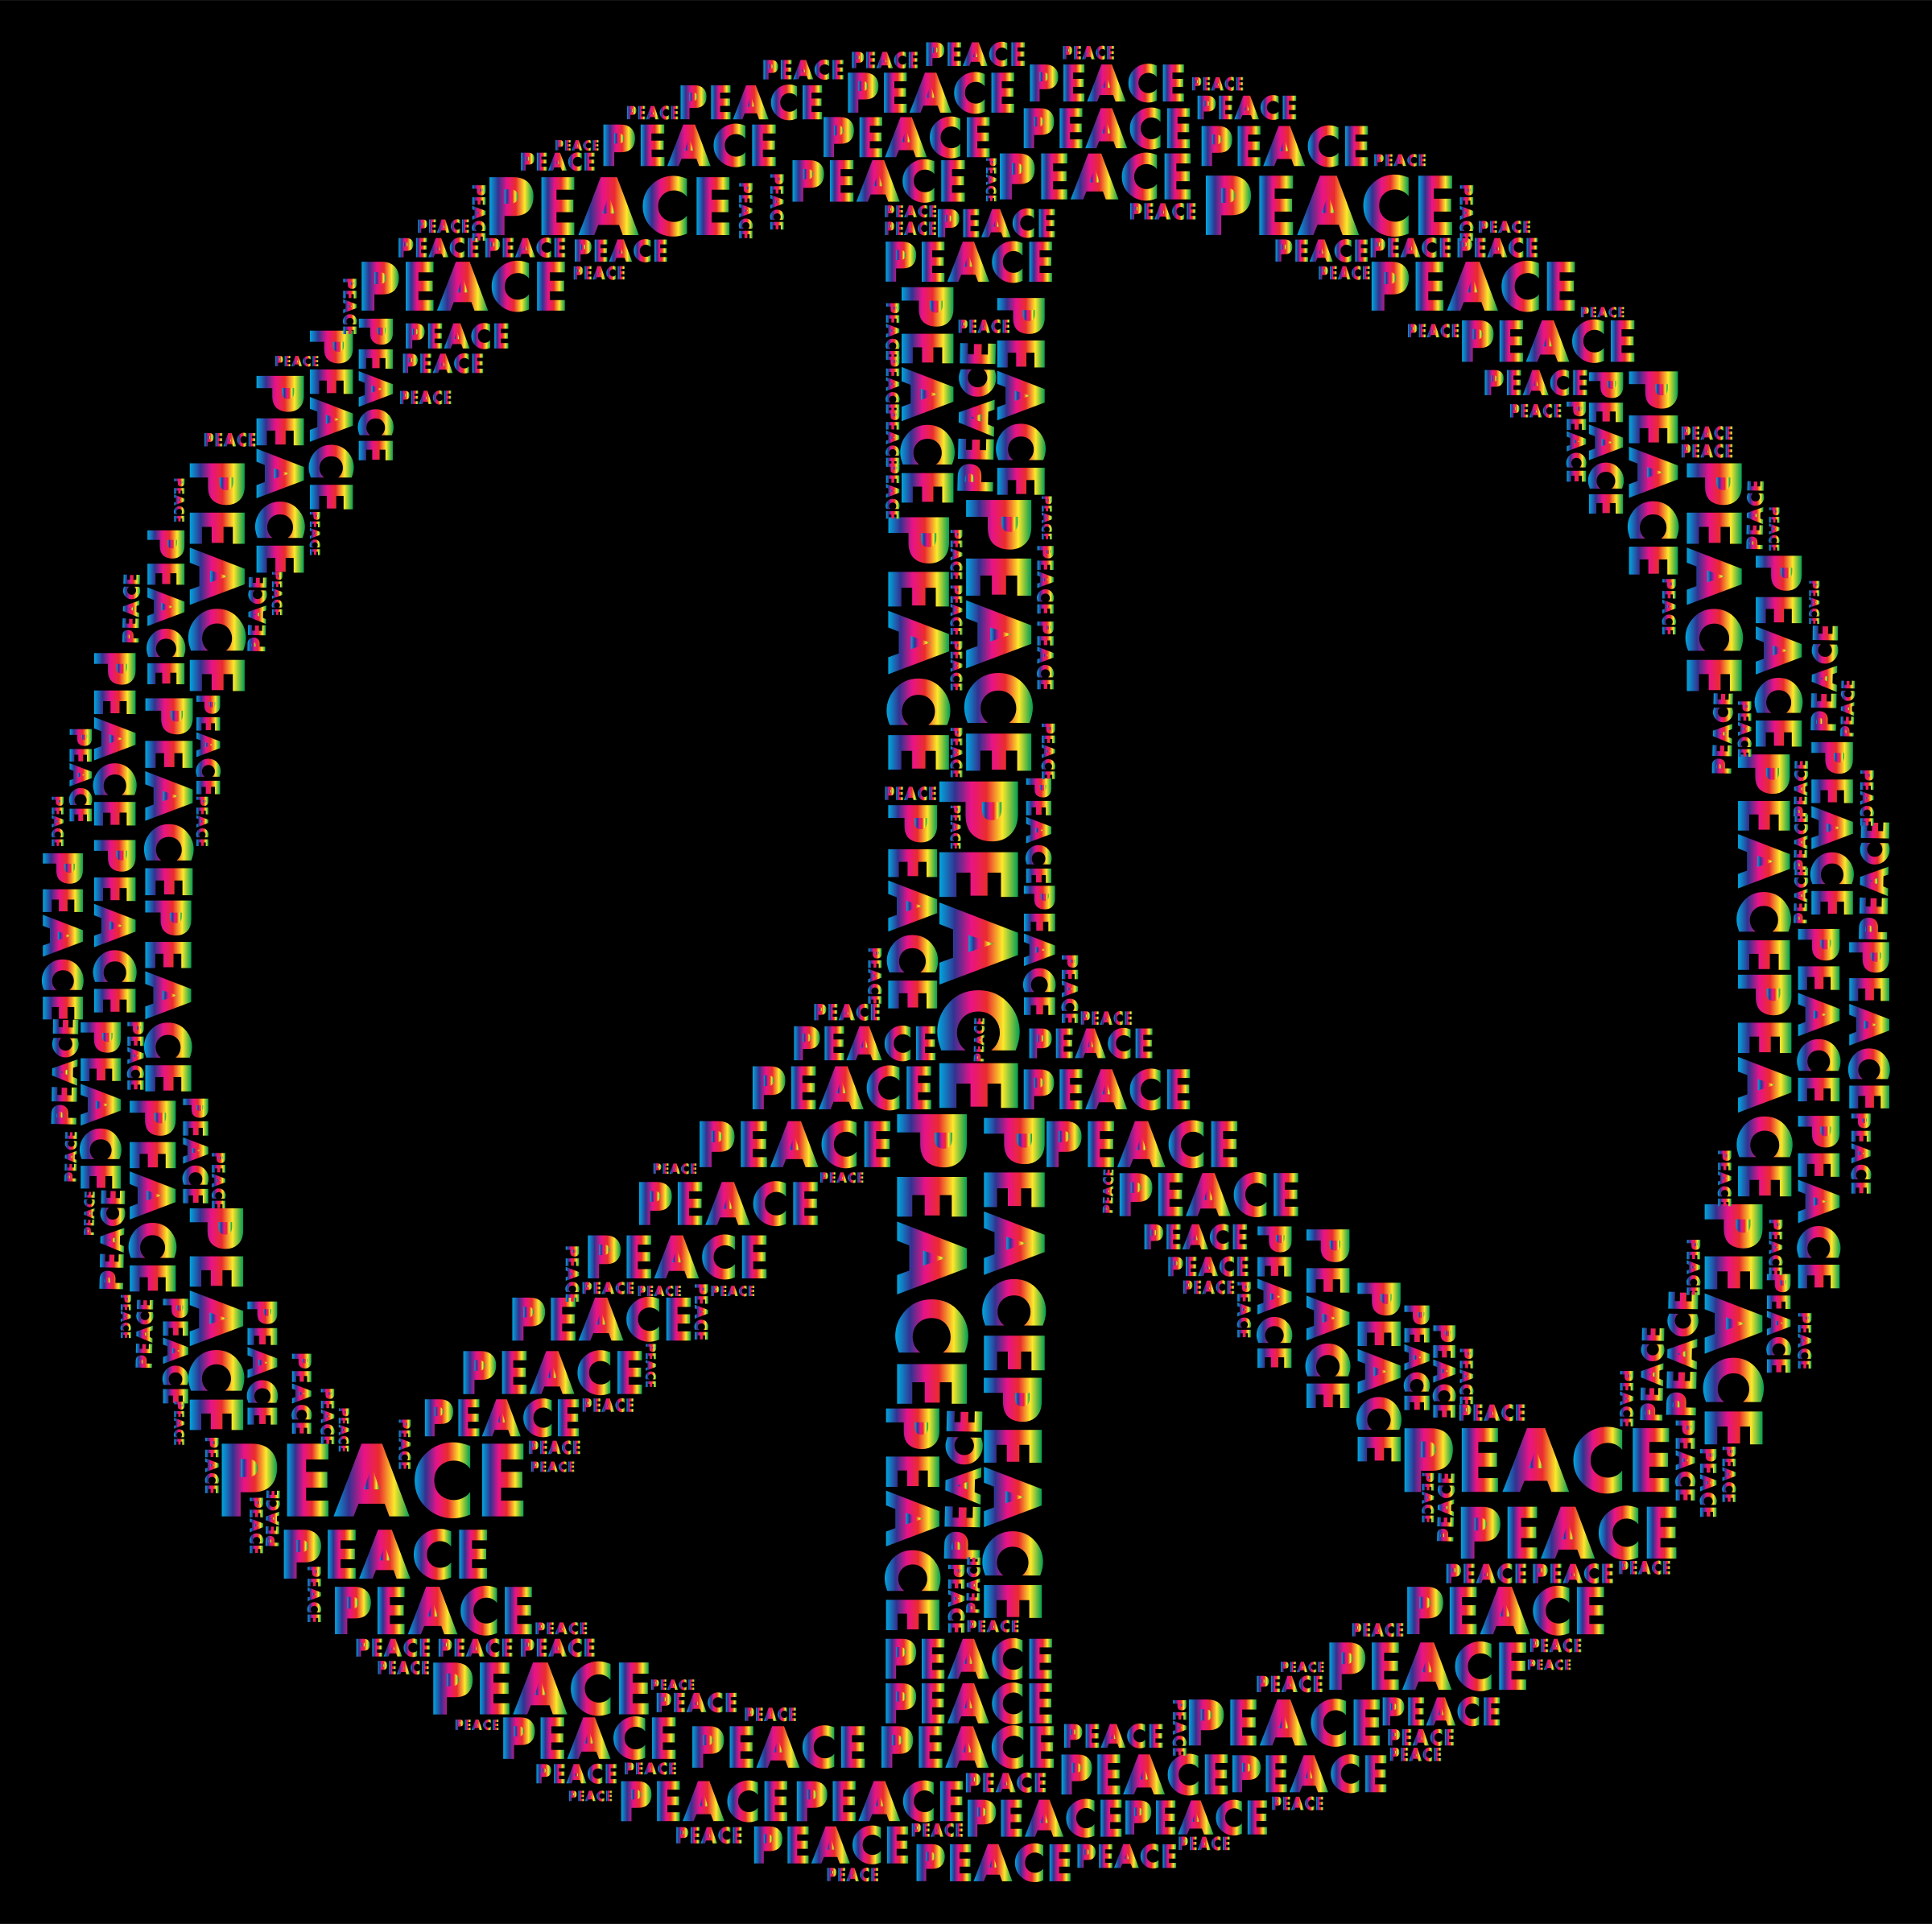 Spectrum Peace Sign Word Cloud by GDJ